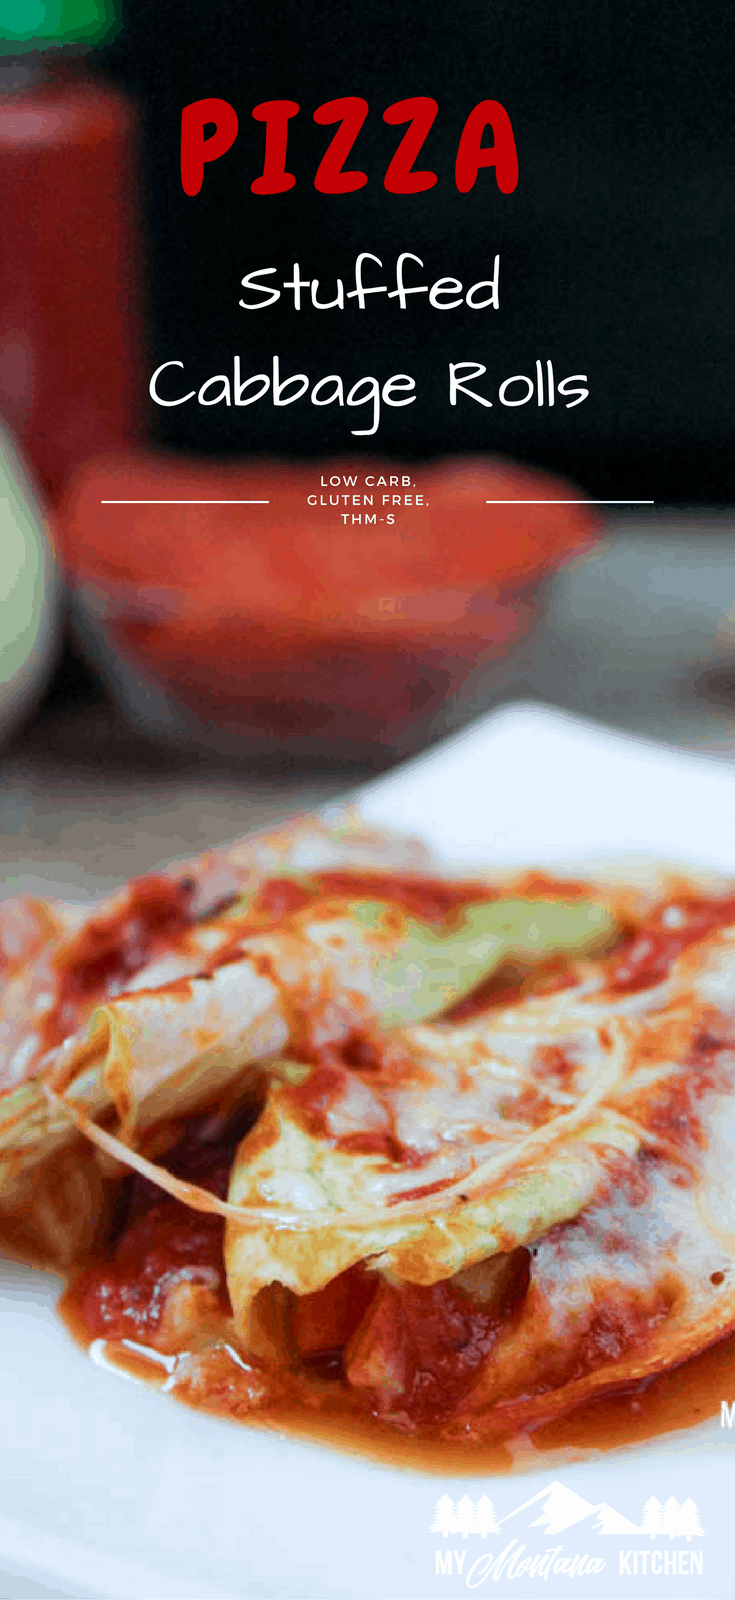 Pizza Stuffed Cabbage Rolls (Low Carb, THM-S) #pizza #cabbage #cabbagerolls #trimhealthymama #thm #lowcarb #sugarfree #pizza #lowcarbpizza